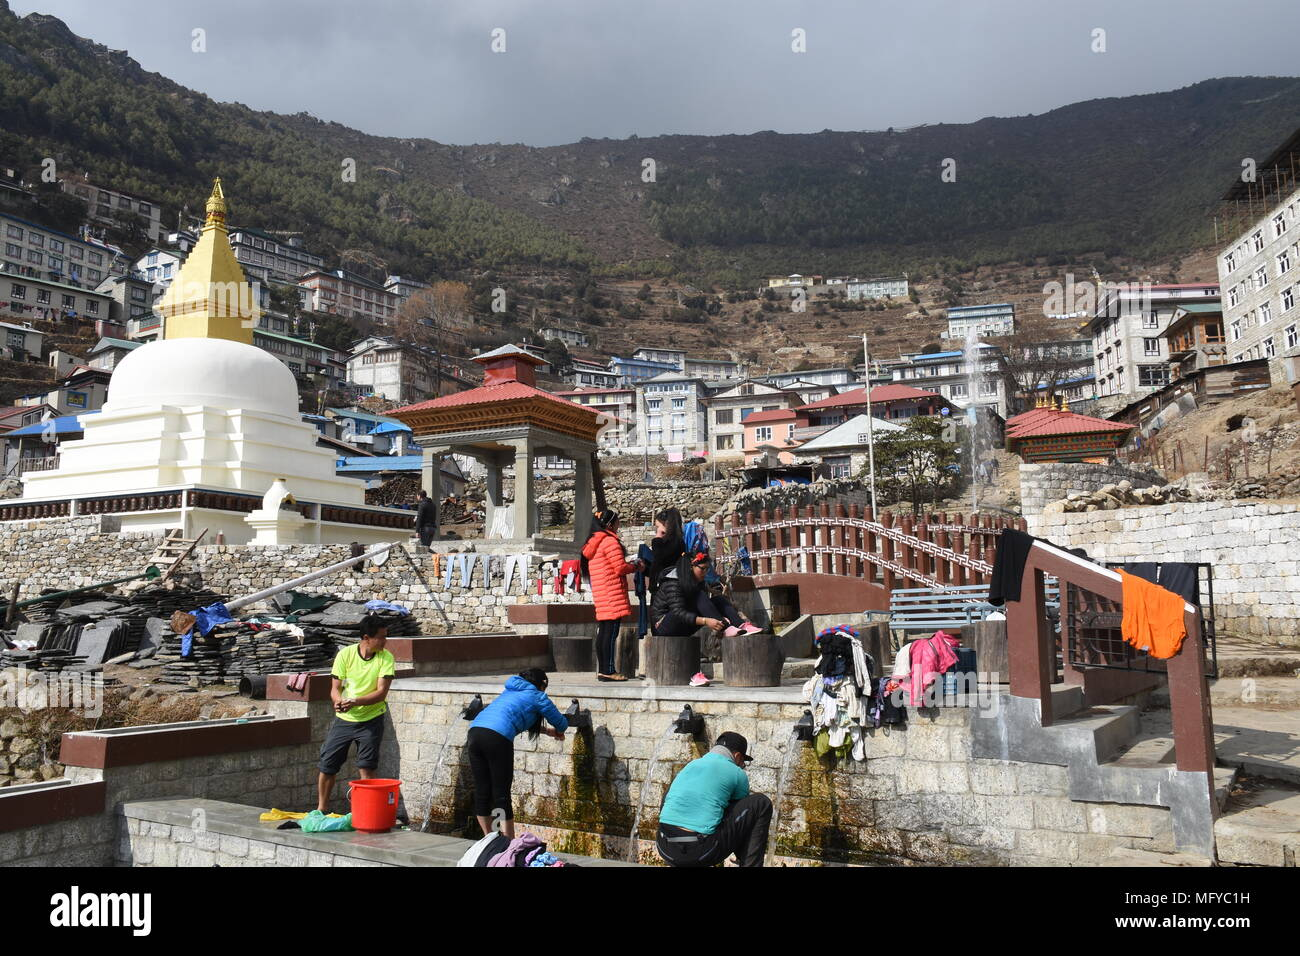 Namche Bazaar, Nepal - March 10,  2018: People washing clothes in a creek - Stock Image